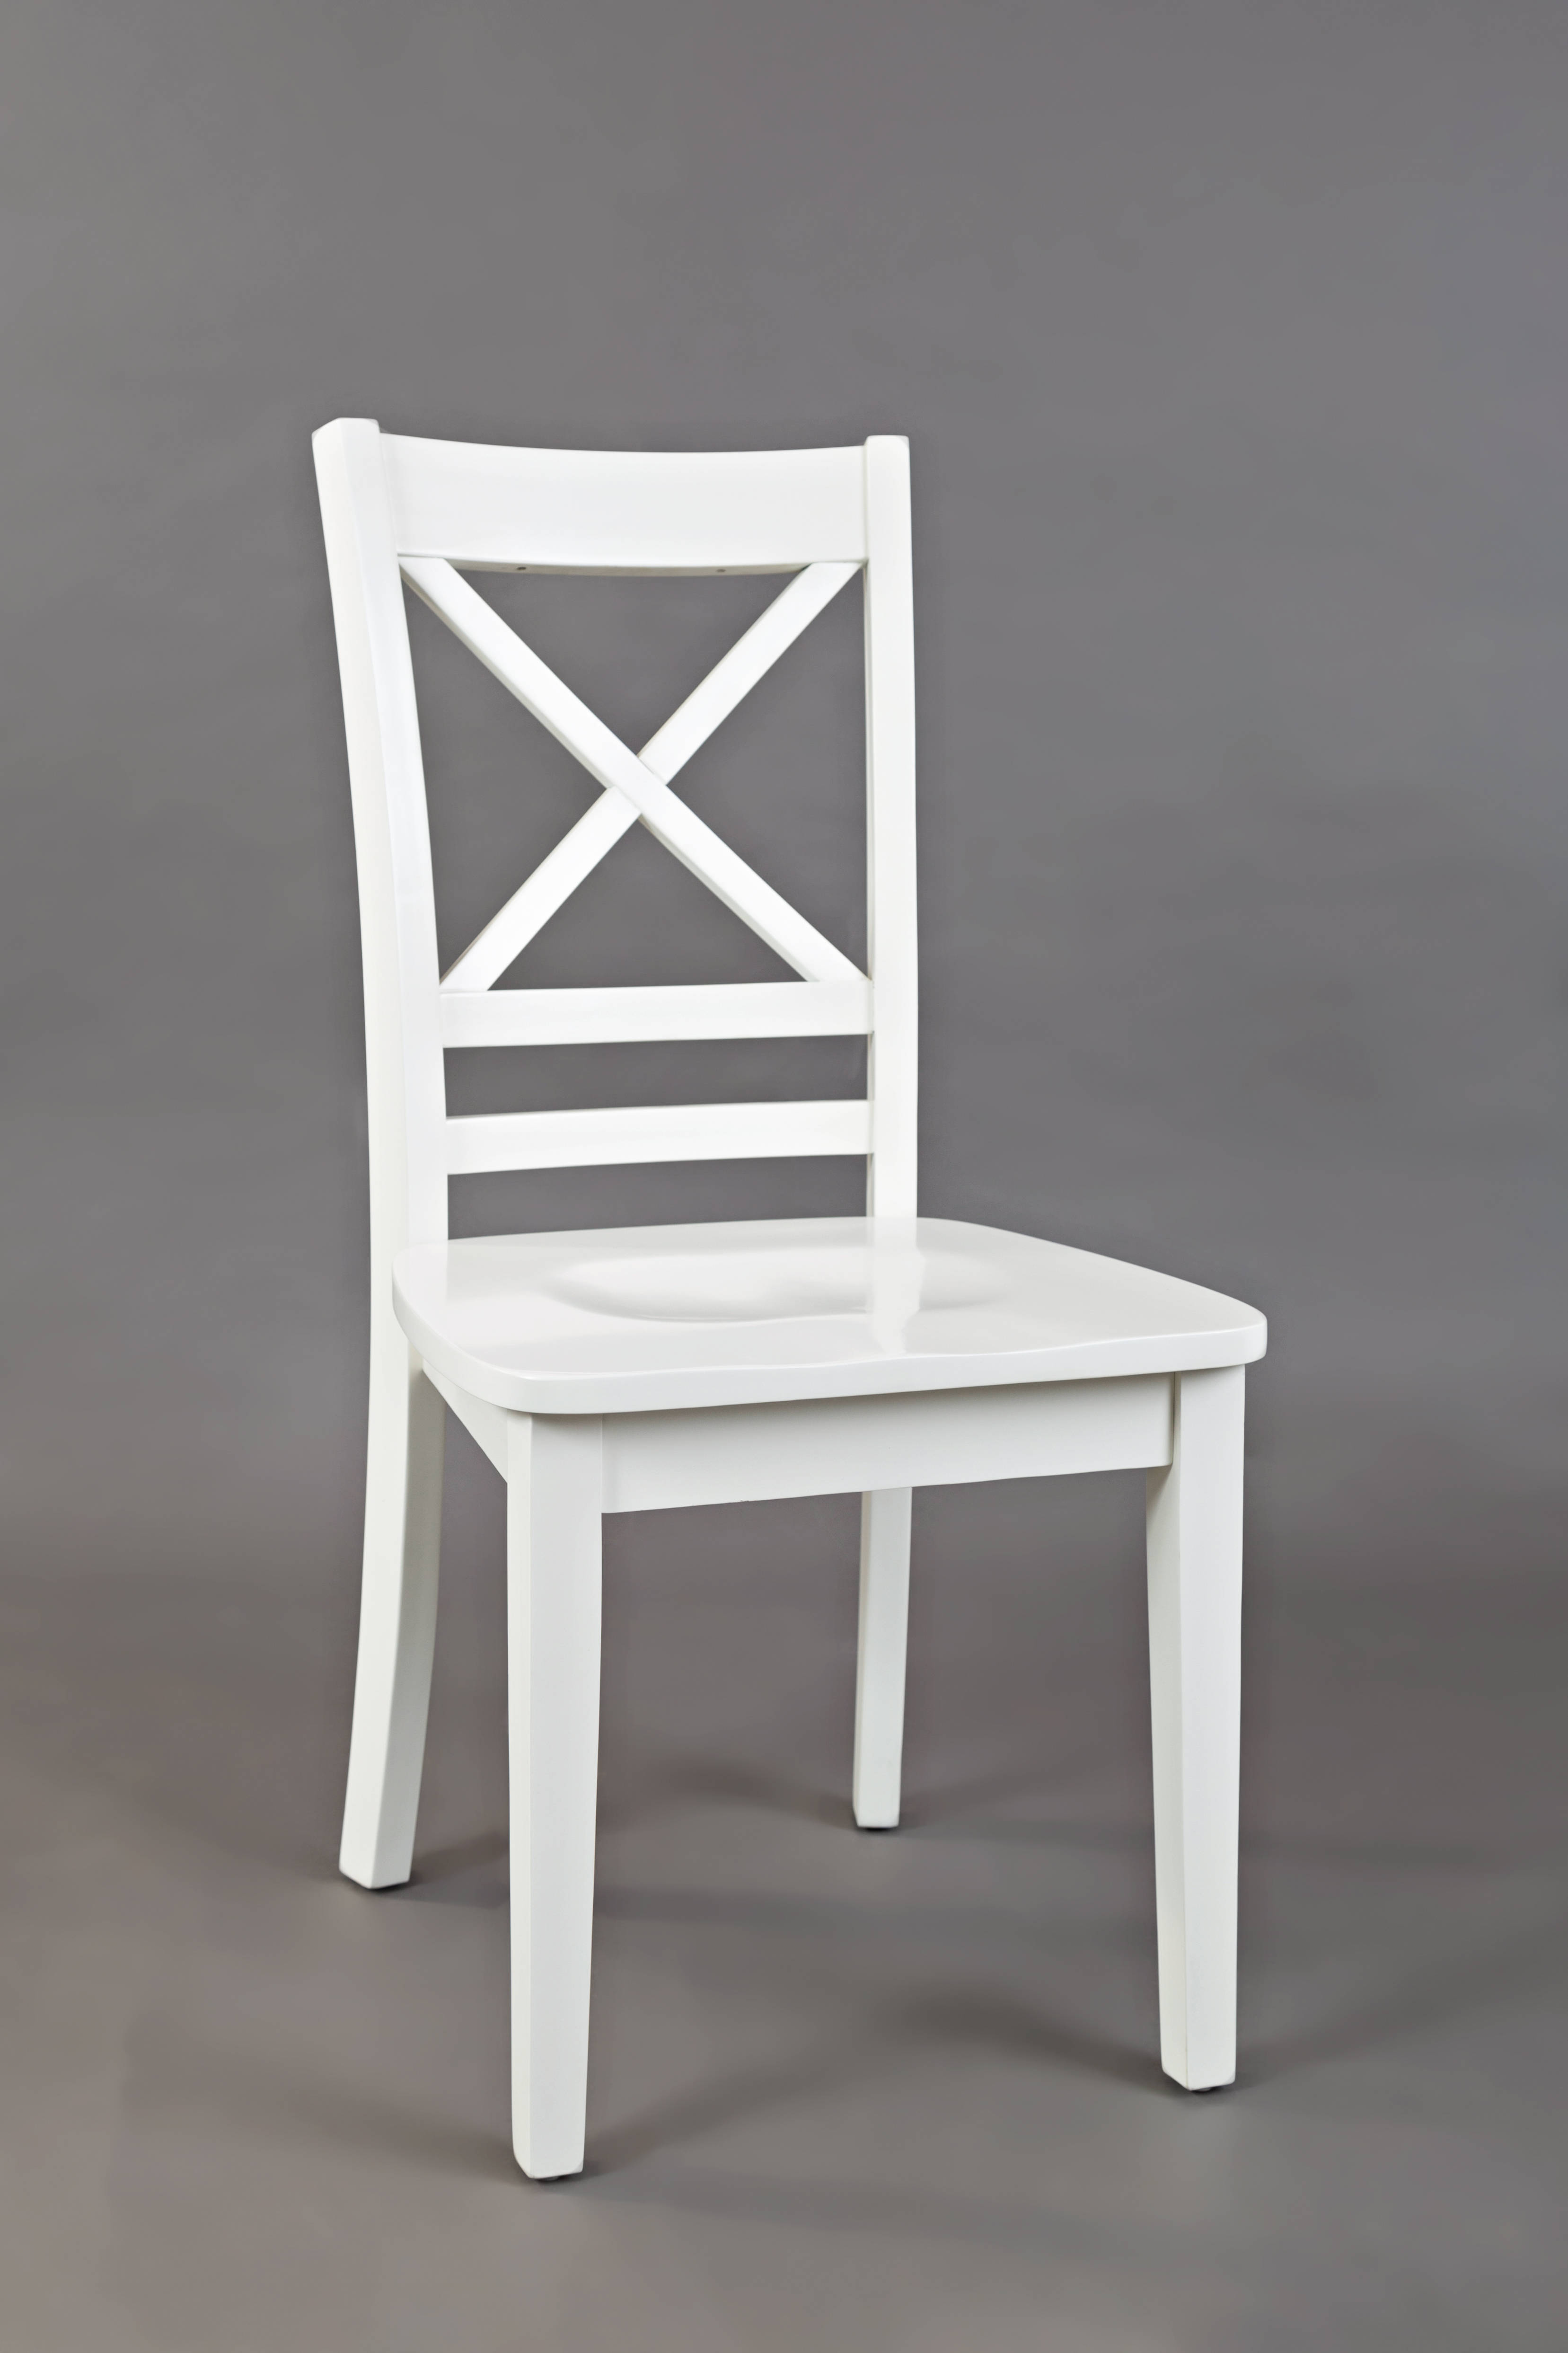 Groovy 2 Jofran Furniture Simplicity Paper White X Back Dining Chairs Ibusinesslaw Wood Chair Design Ideas Ibusinesslaworg